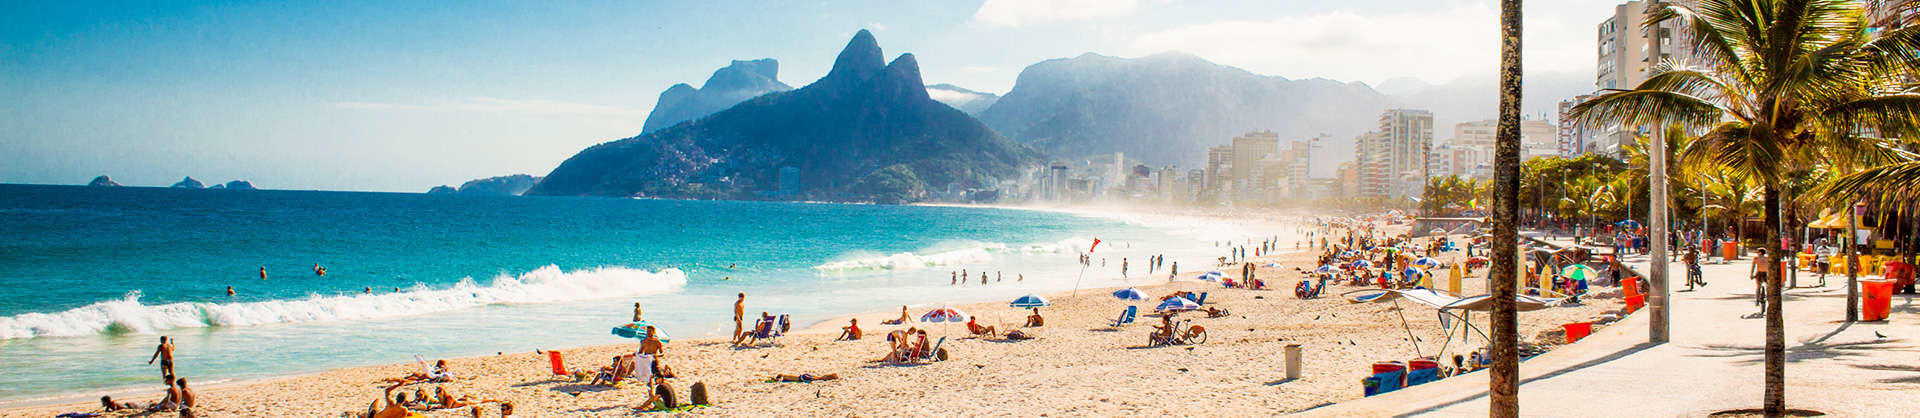 A view of Ipanema beach with mountains in the background